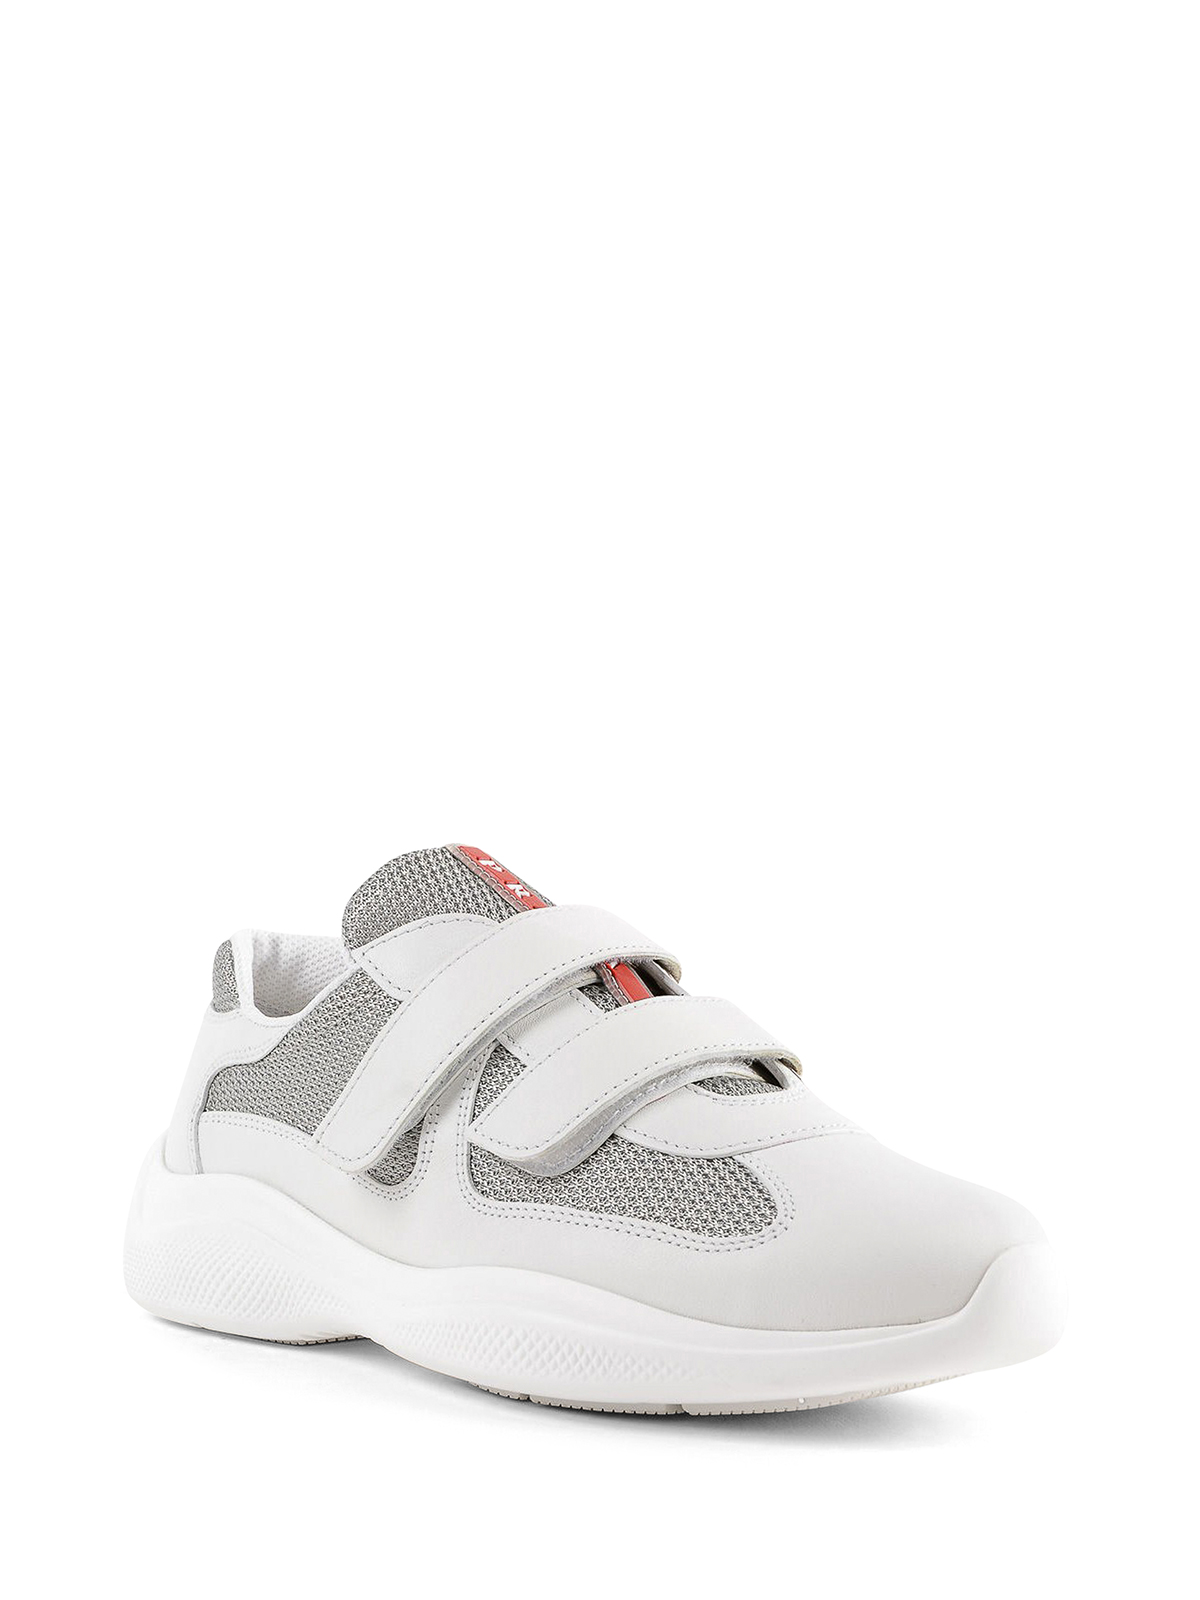 Prada - White and silver sneakers with